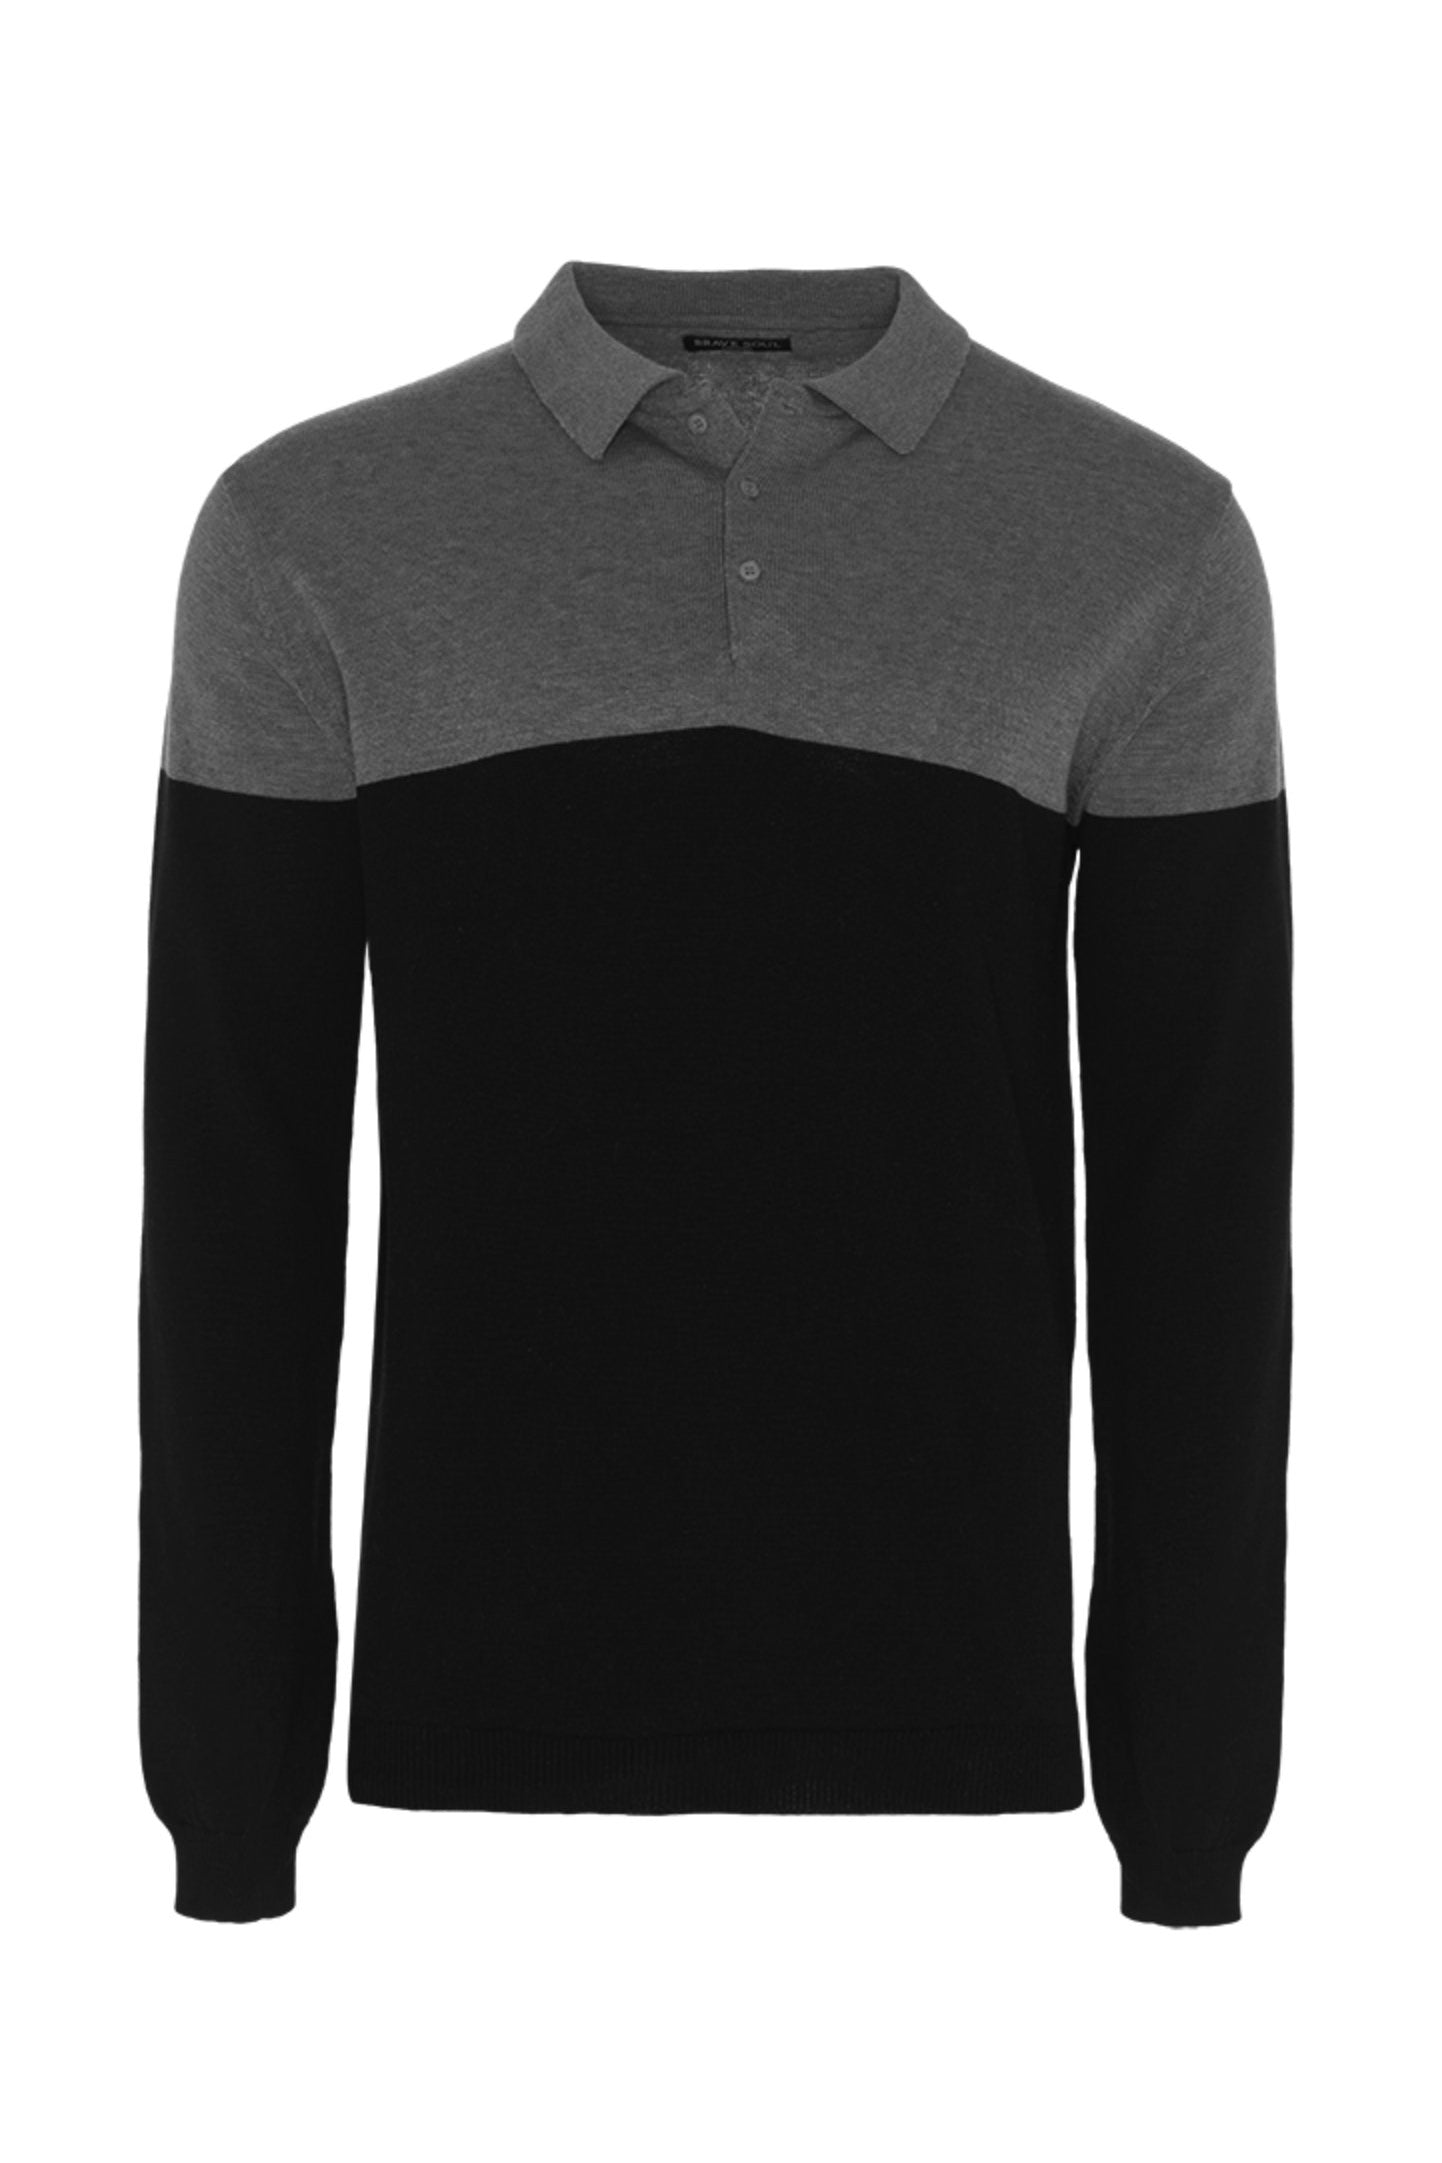 Knitwear - Contrast Knitted Polo Long Sleeve Grey Black